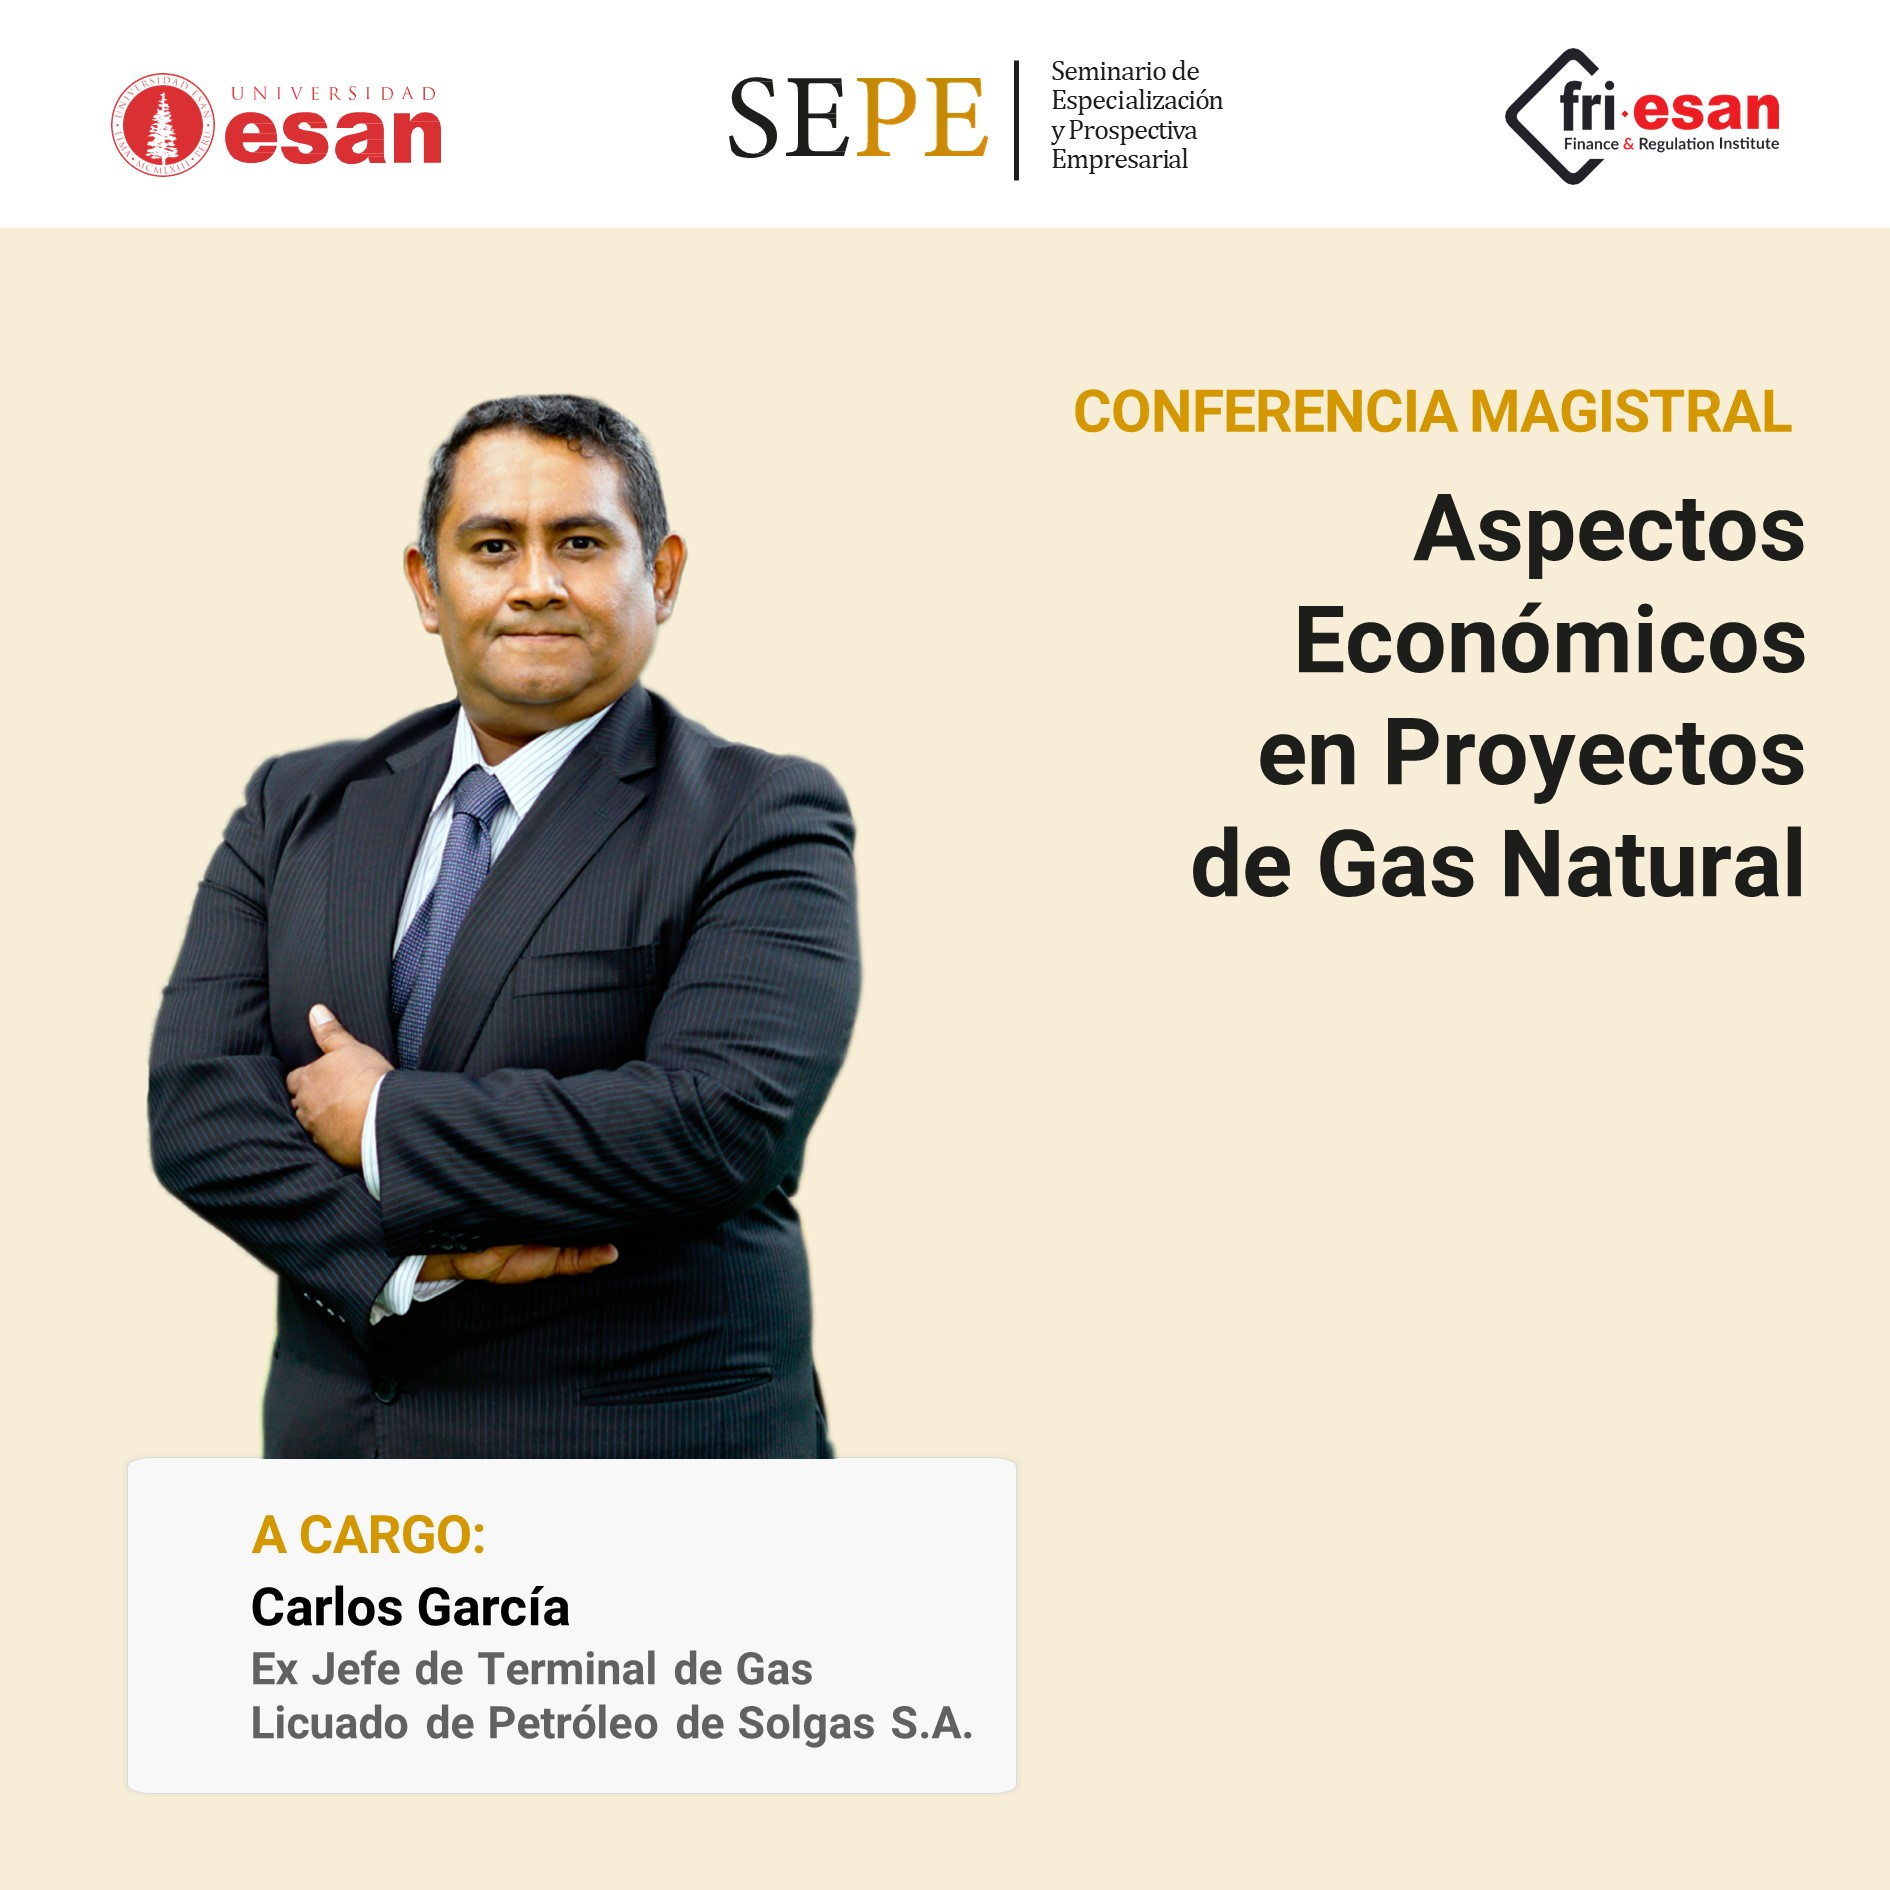 Aspectos Económicos en Proyectos de Gas Natural